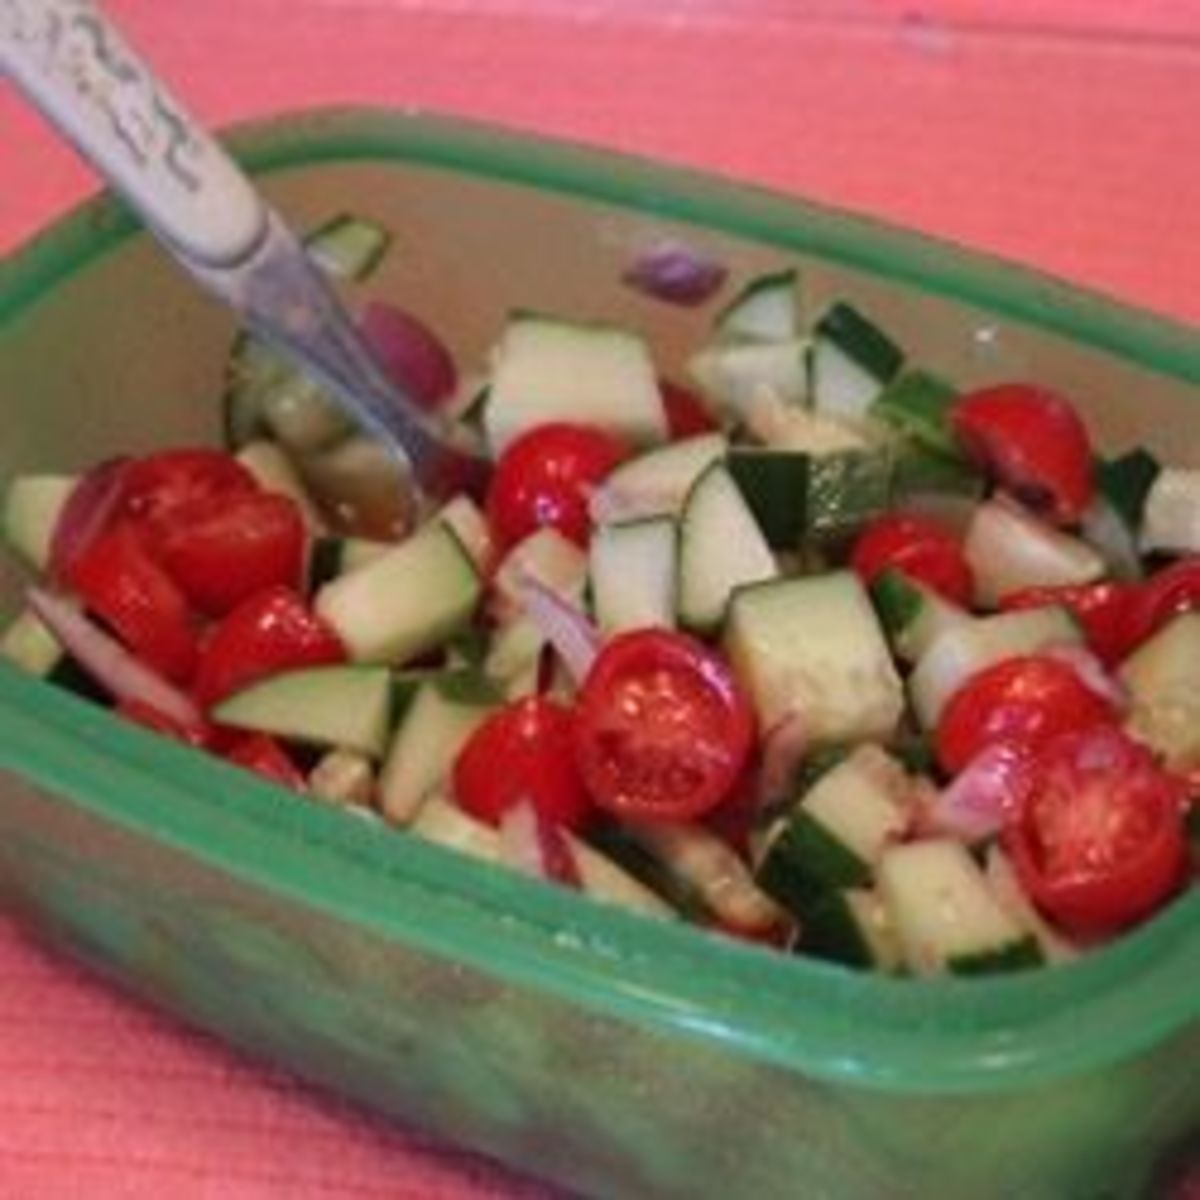 Tomato Cucumber Salad Recipe, Plus Ideas for Variants